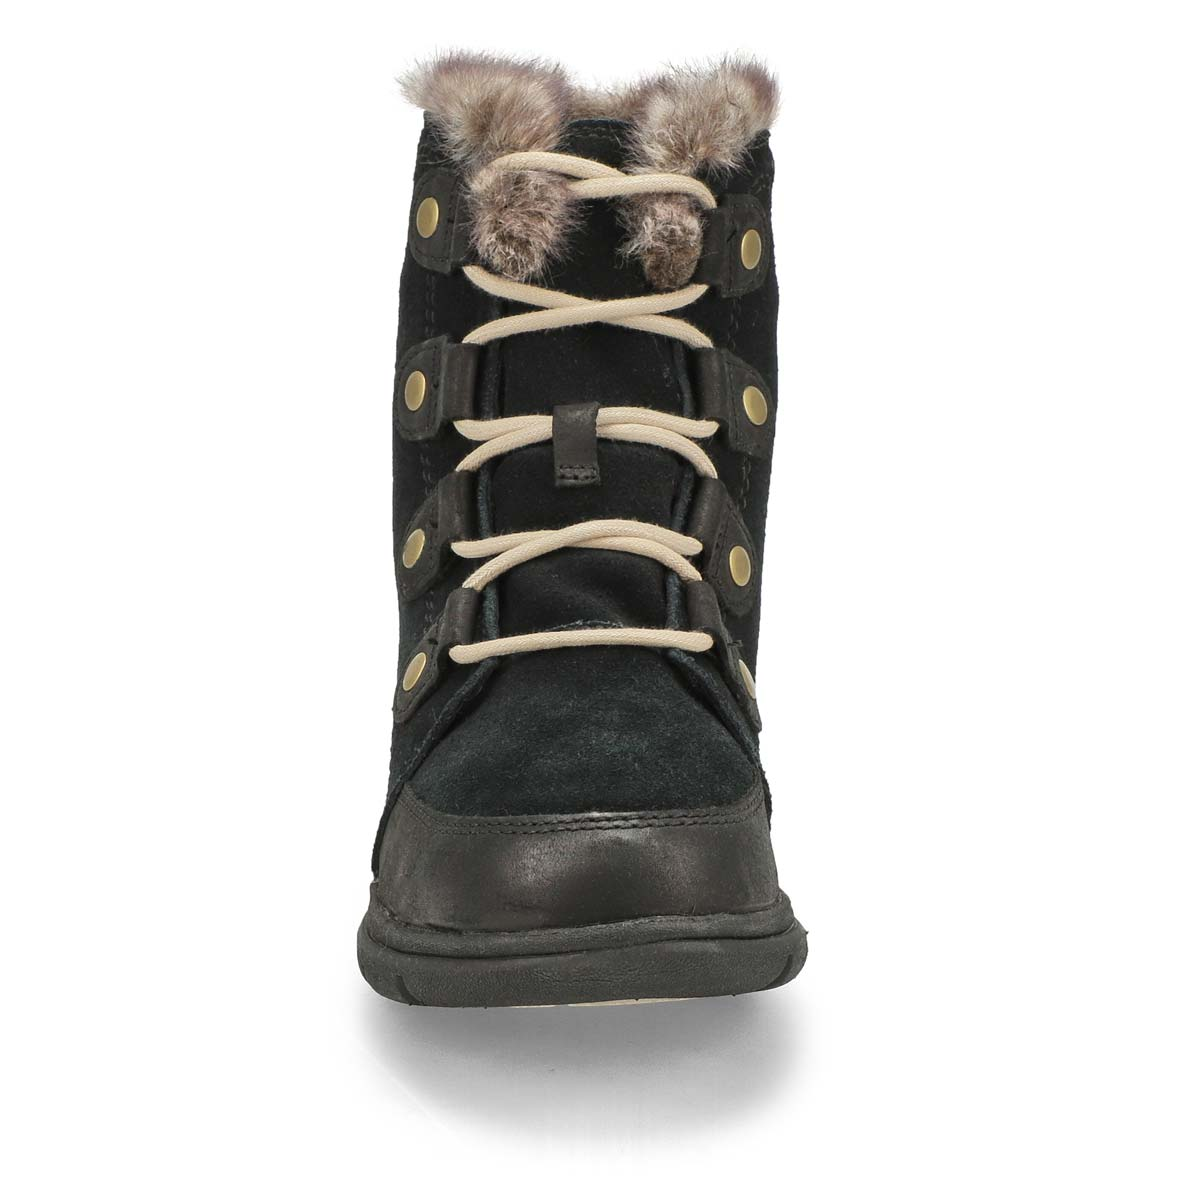 Lds Explorer Joan blk/stn wtrpf boot